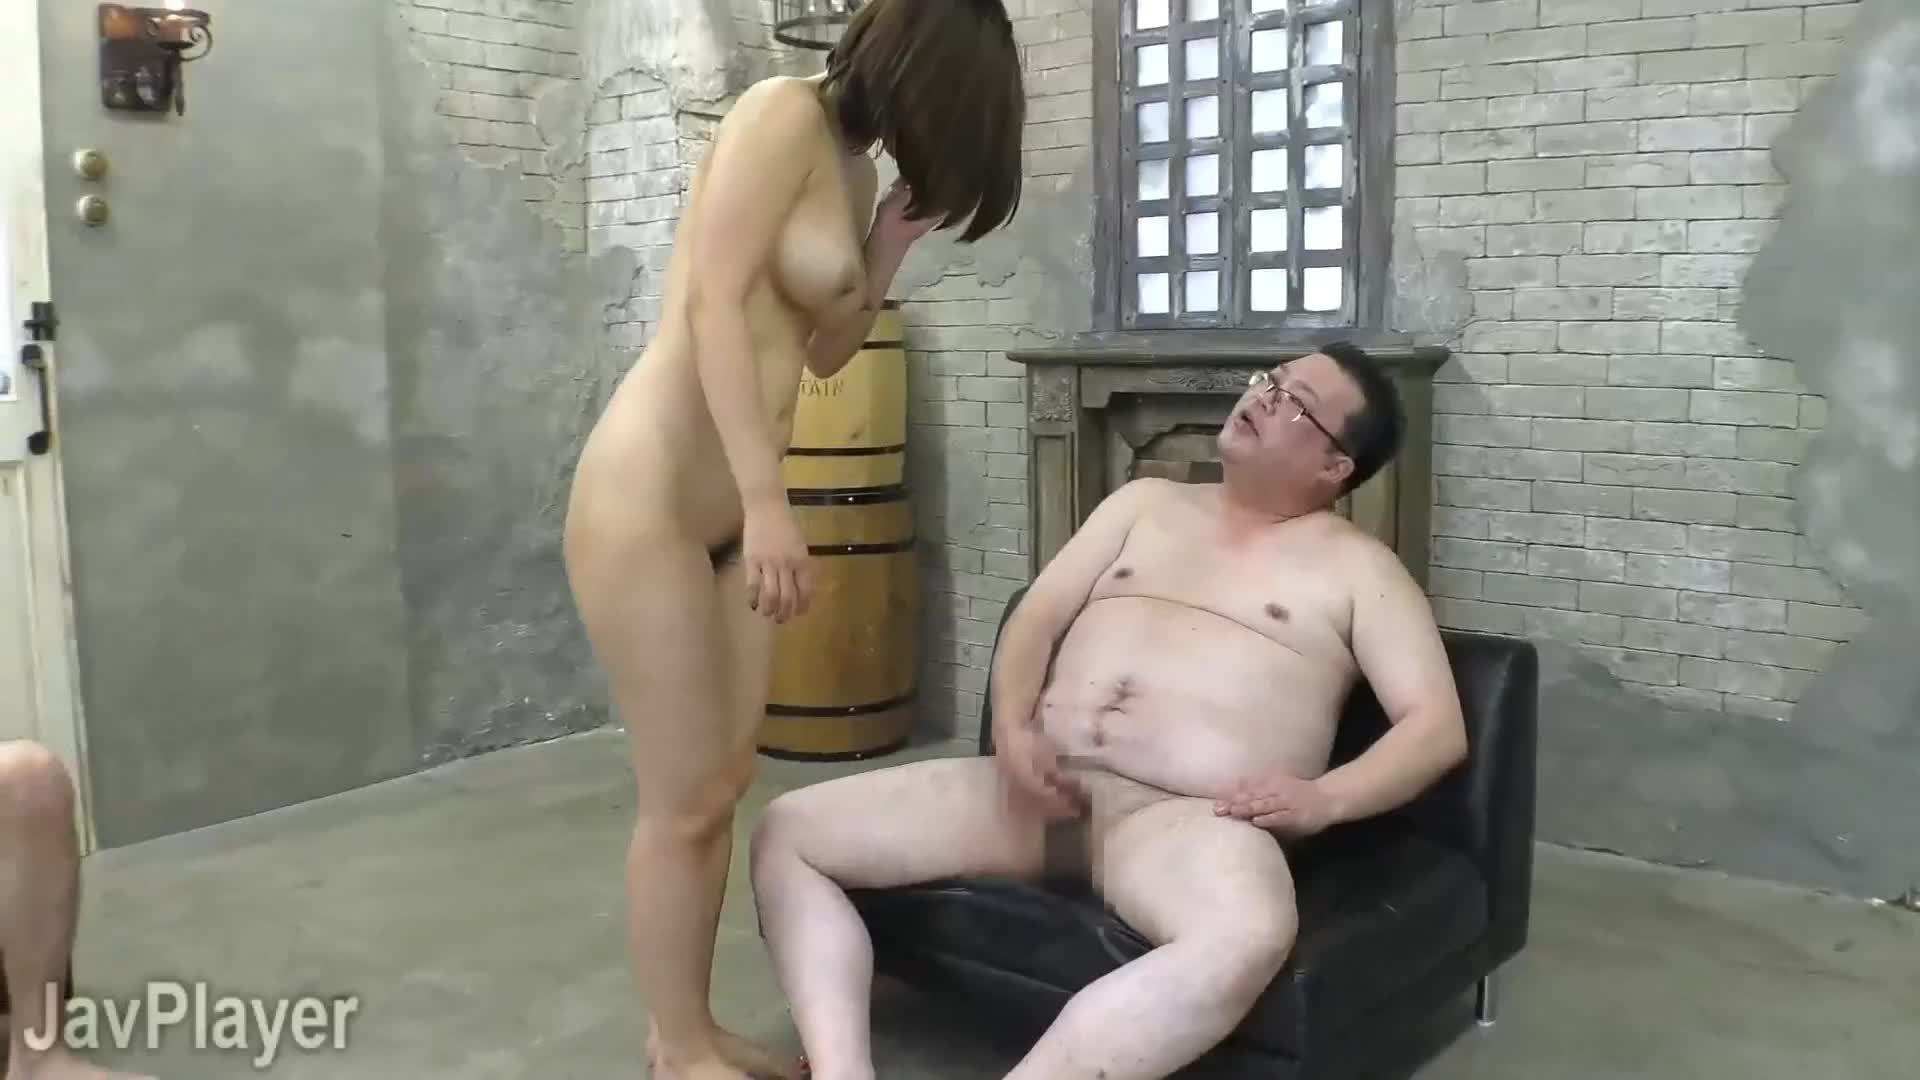 I'm not a Japanese language expert, but I think the man tells her that he fails to get hard in the first position and tells her to turn around, possibly to get closer penetration.